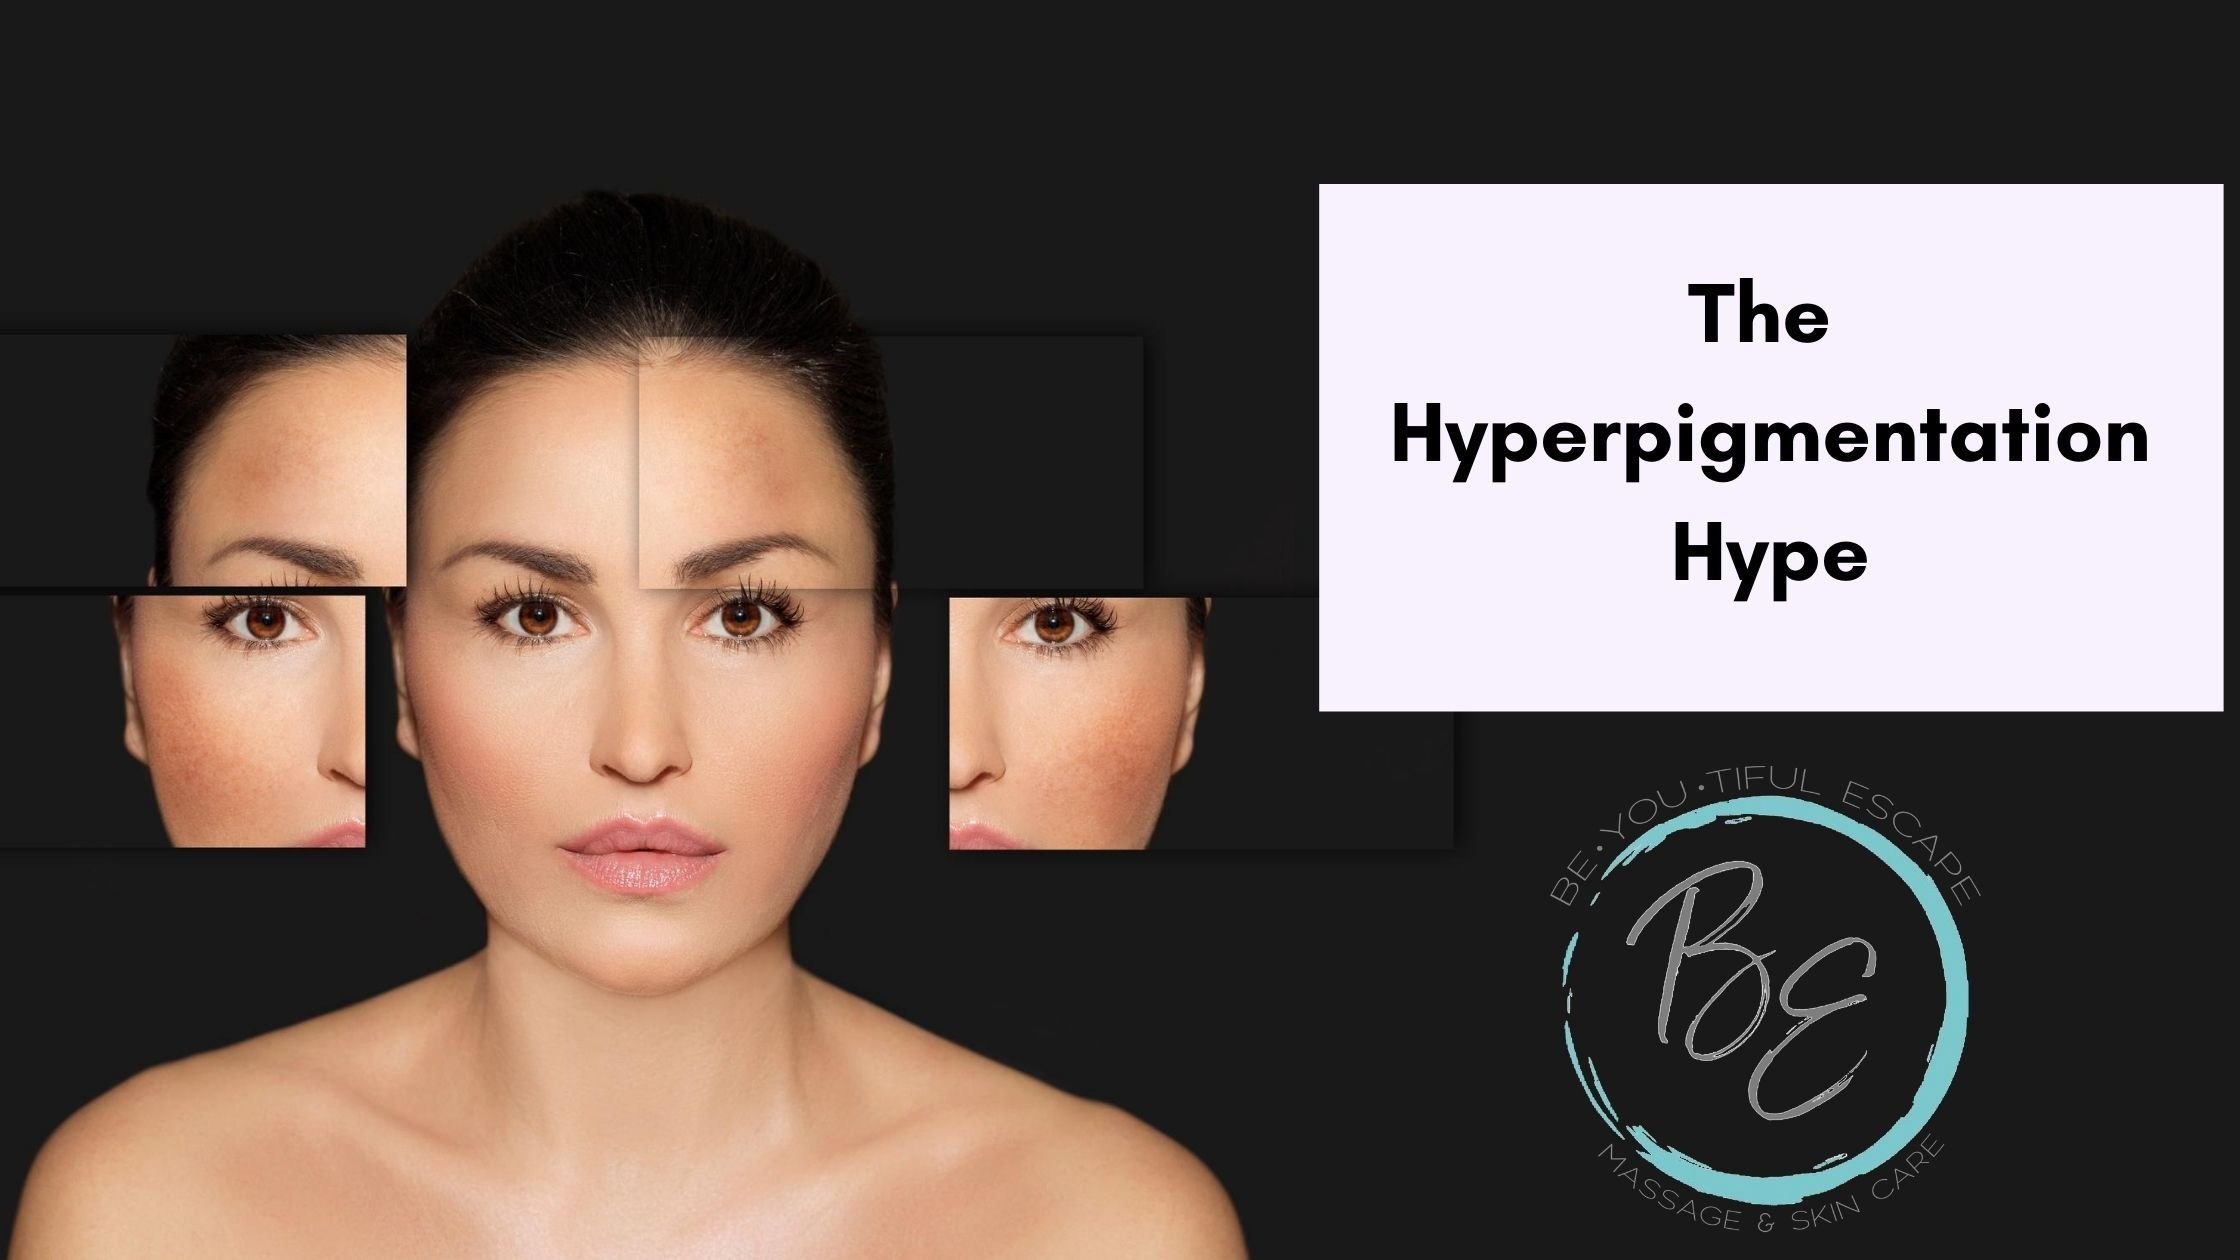 You are currently viewing The Hyperpigmentation Hype